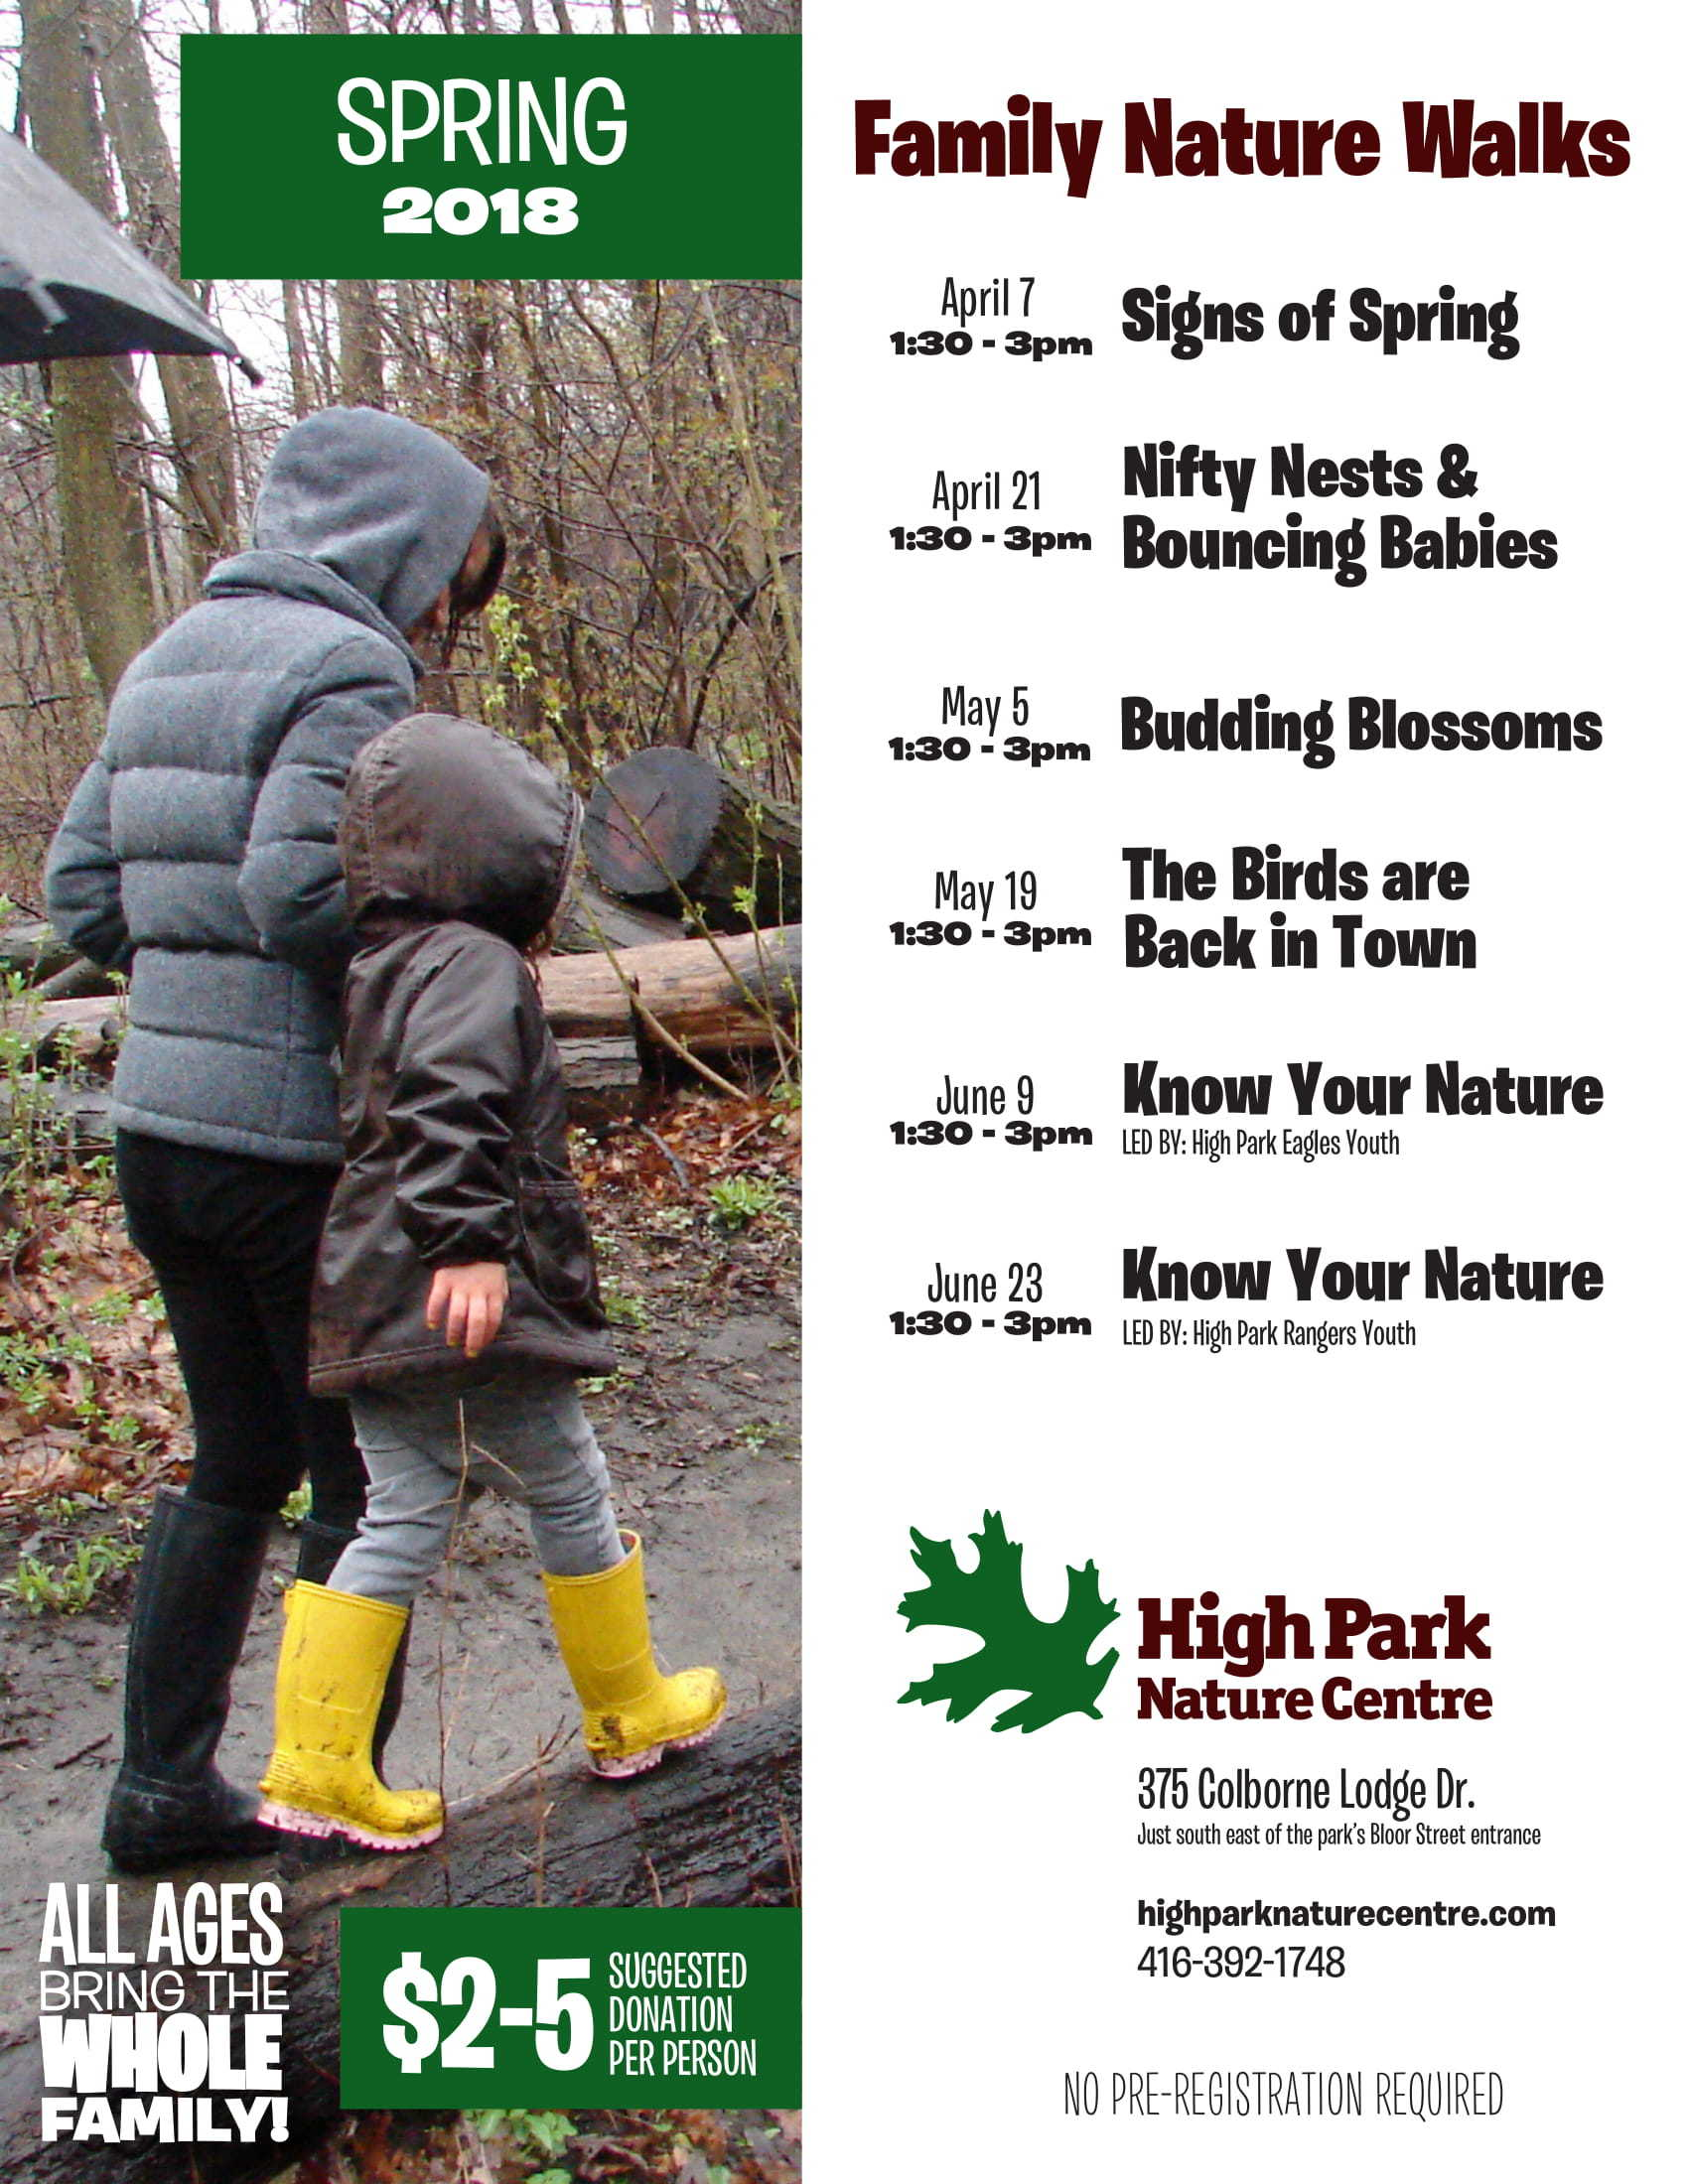 High Park Nature Centre Birthday Parties